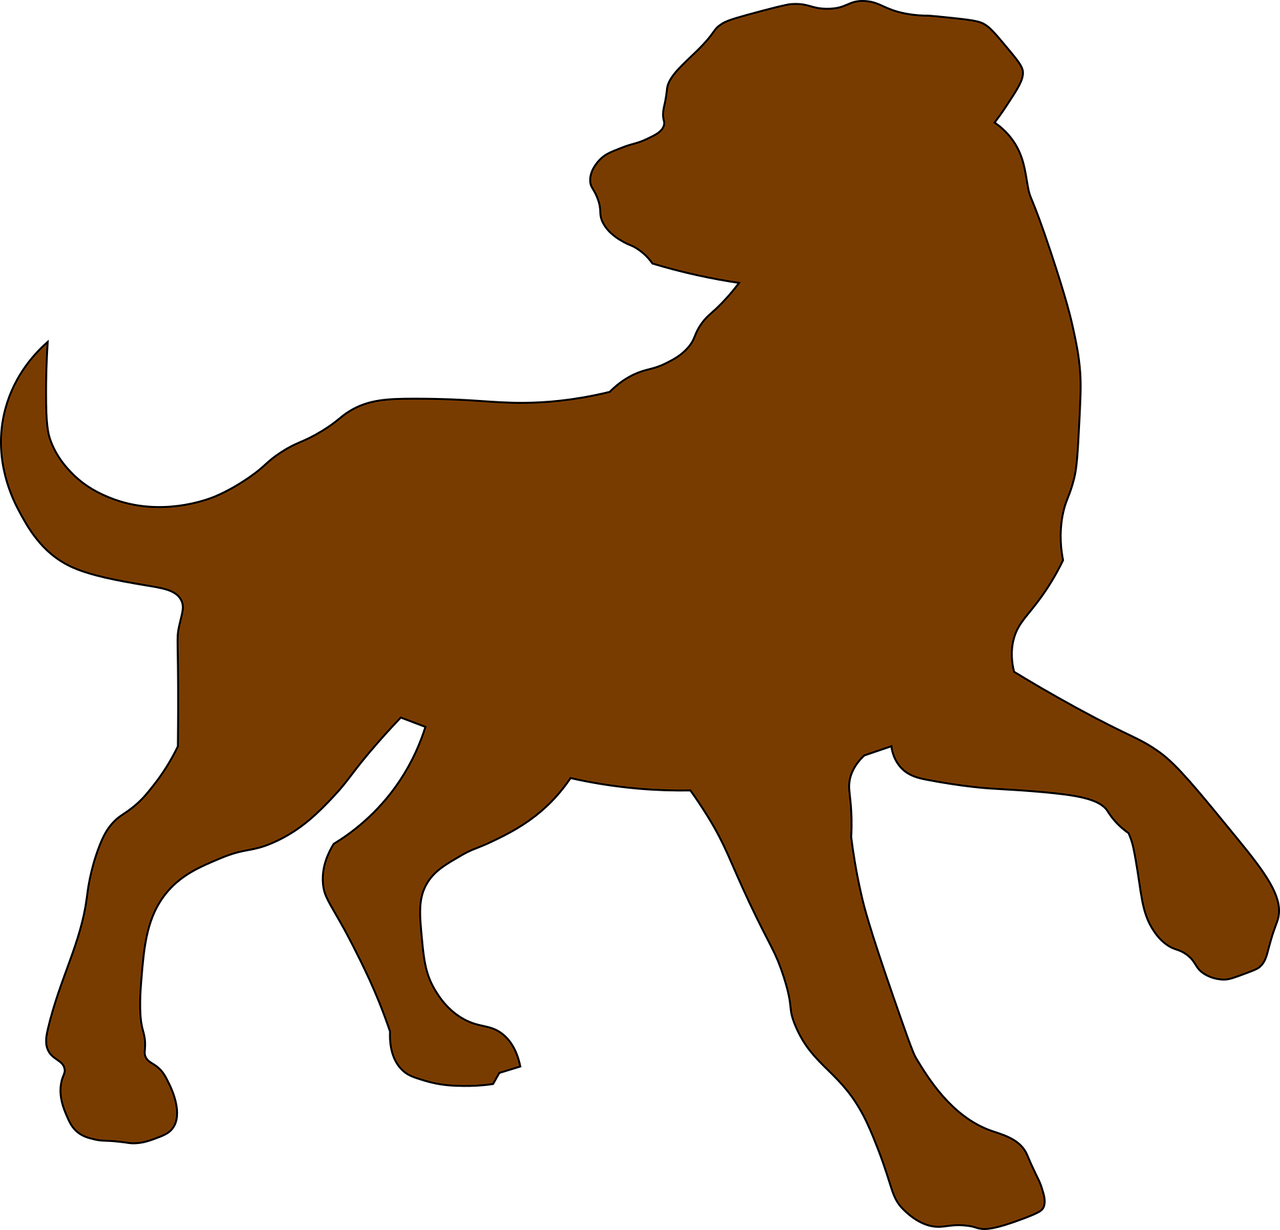 Free image on pixabay. Dog clip art domestic dog banner royalty free library